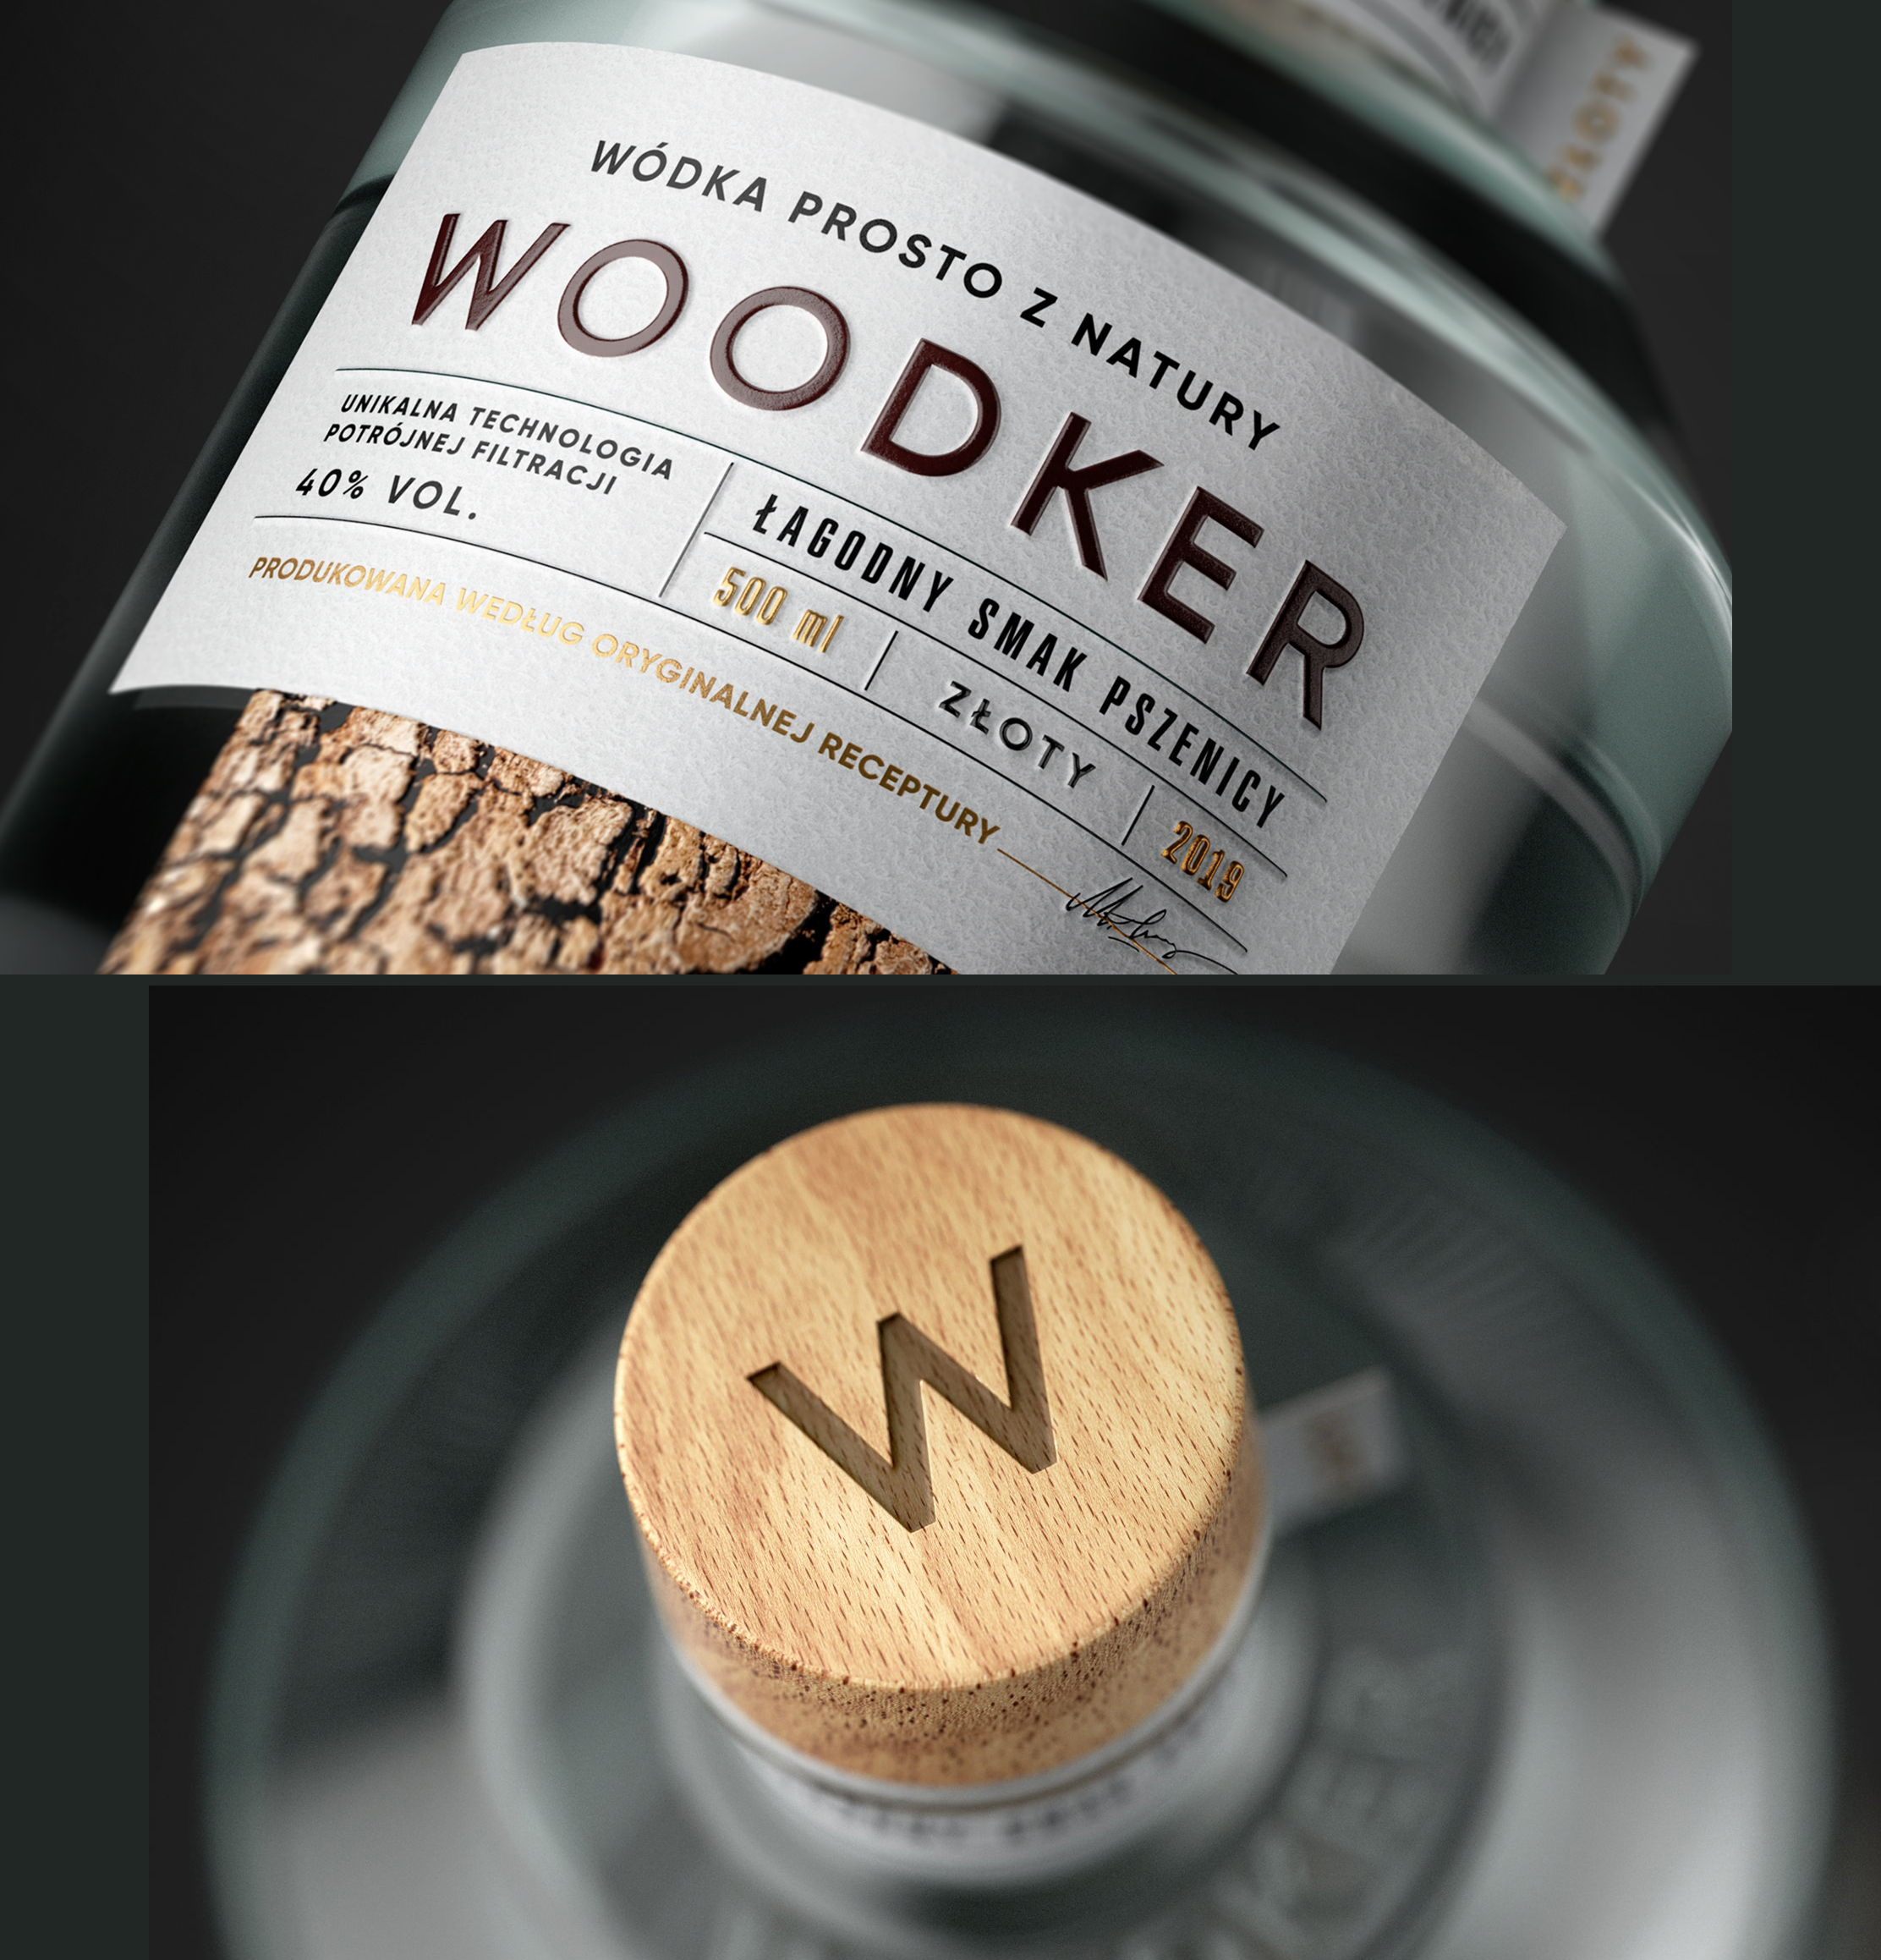 Woodker vodka packaging with bark effect and raised print and wooden lid